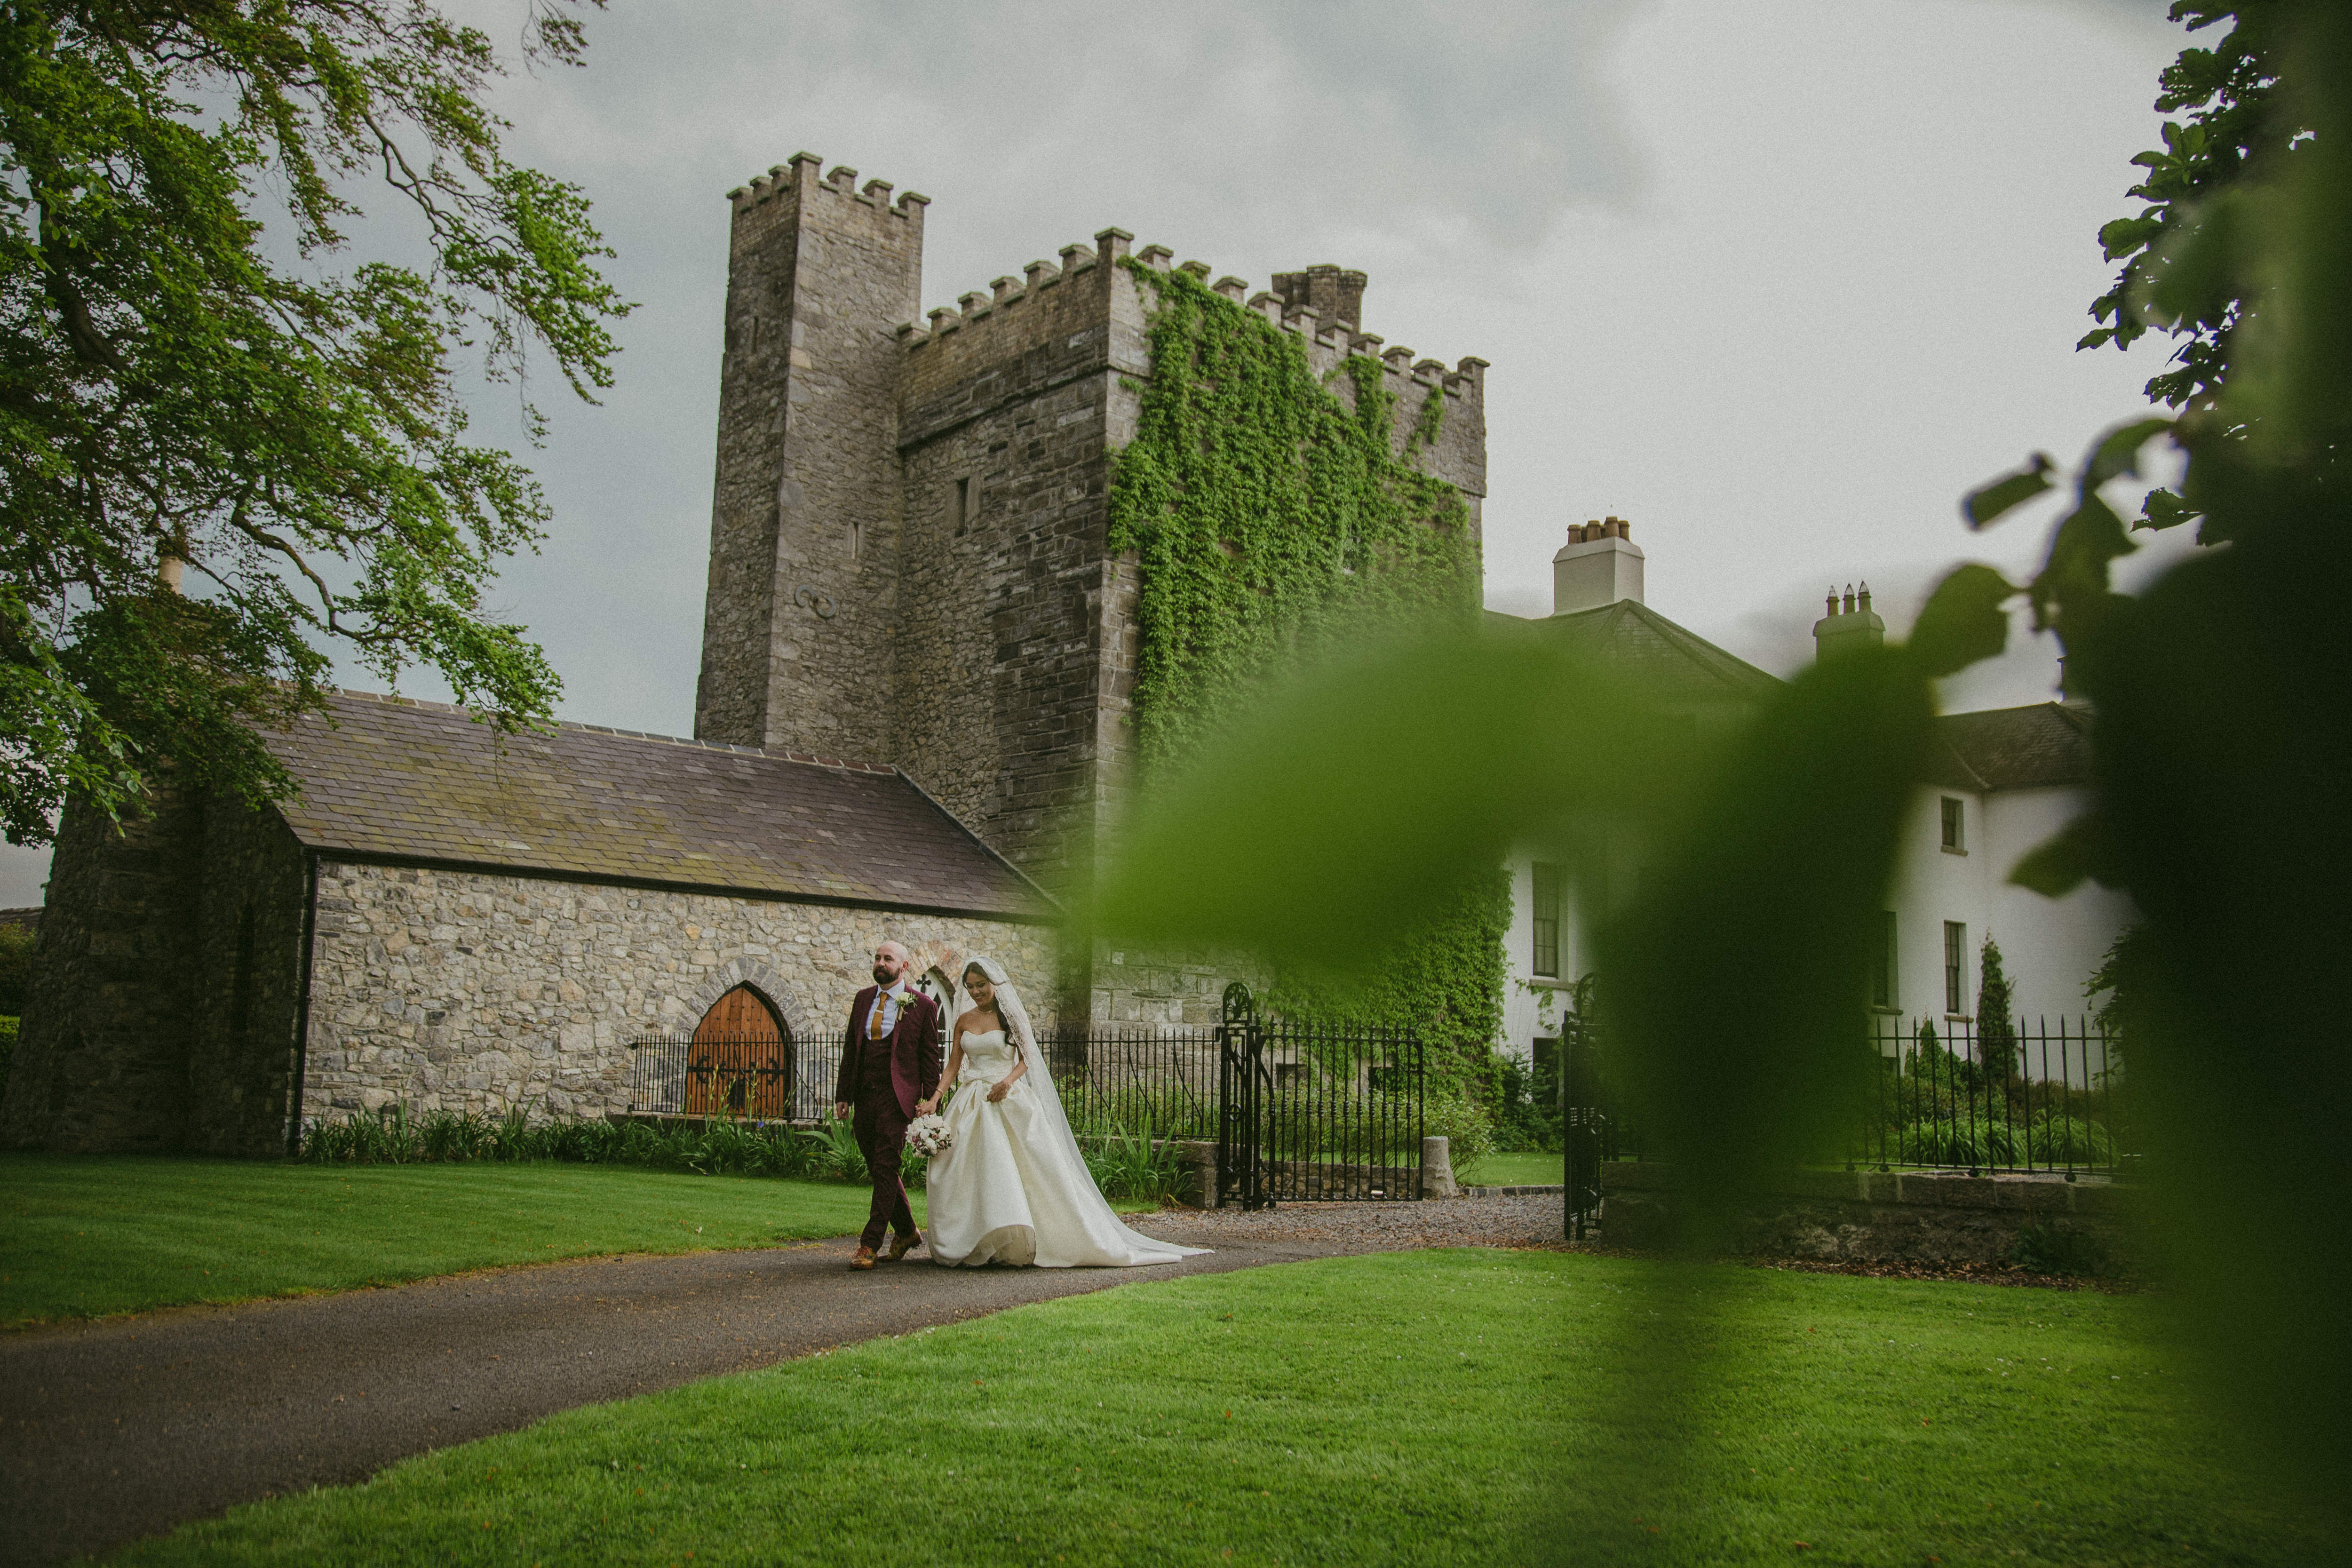 barberstown-castle-wedding-ireland_-598